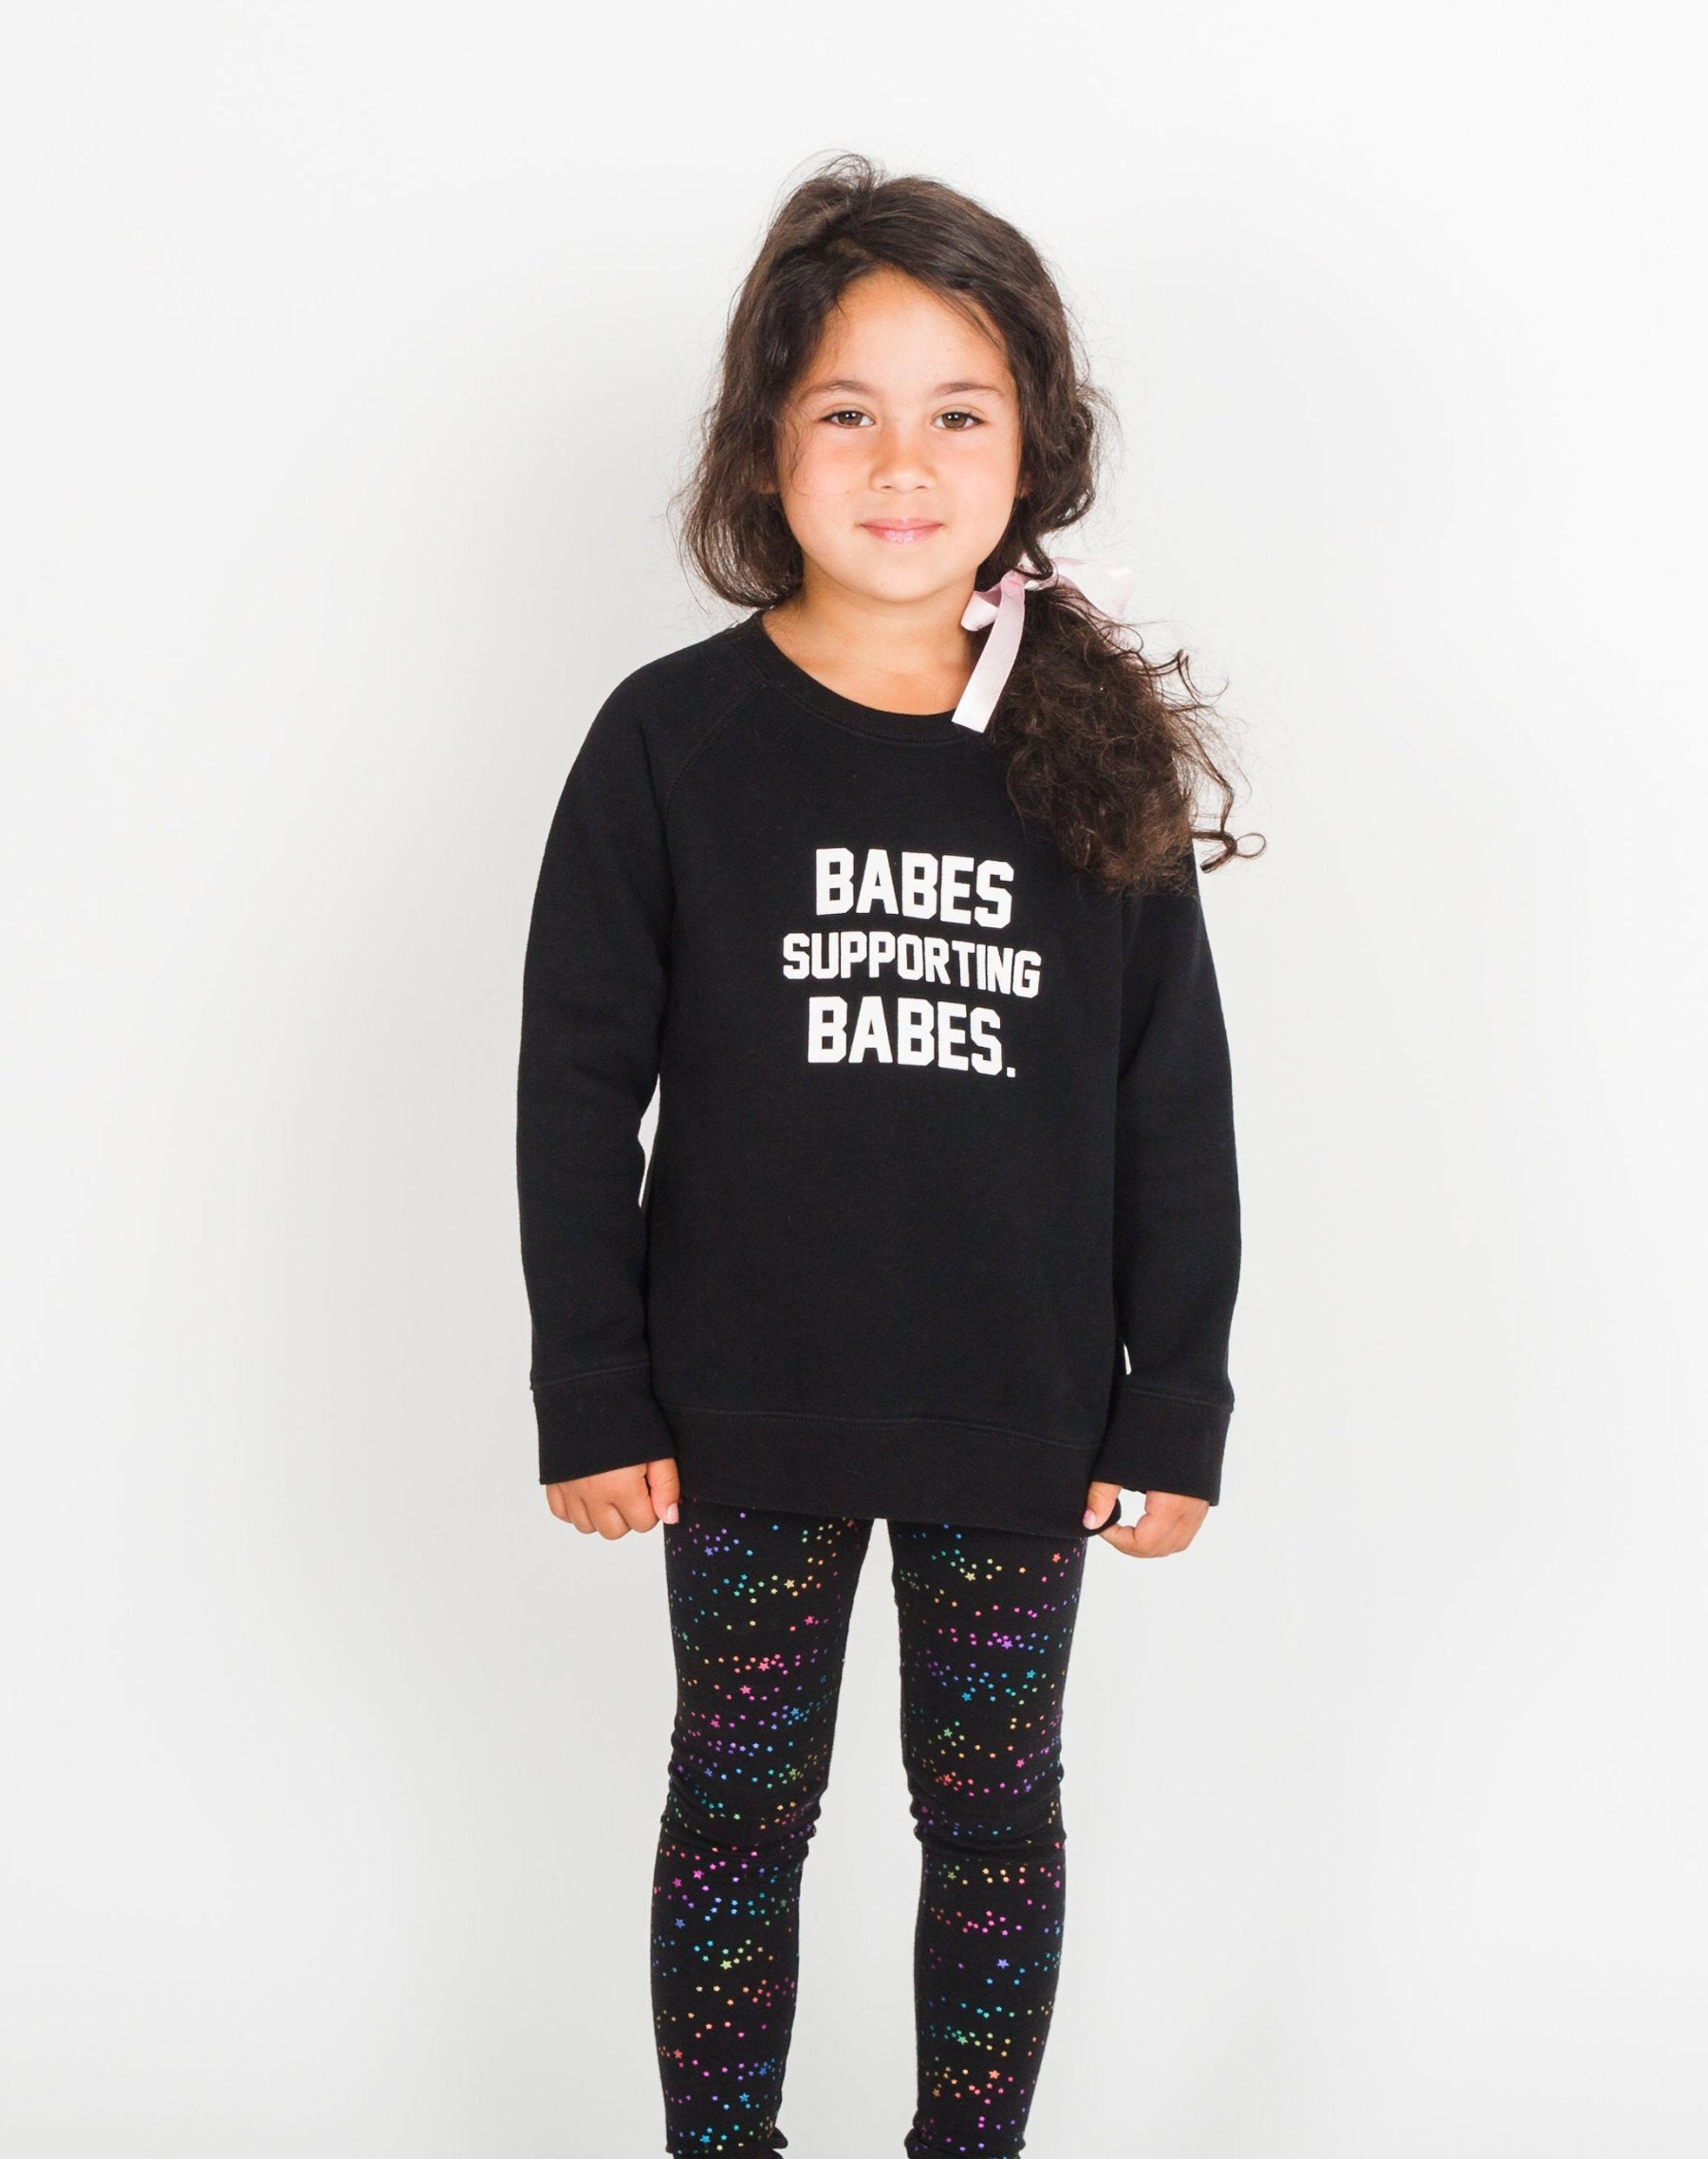 Photo of child wearing the Babes Supporting Babes Little Babes classic crew neck sweatshirt in black by Brunette the Label.